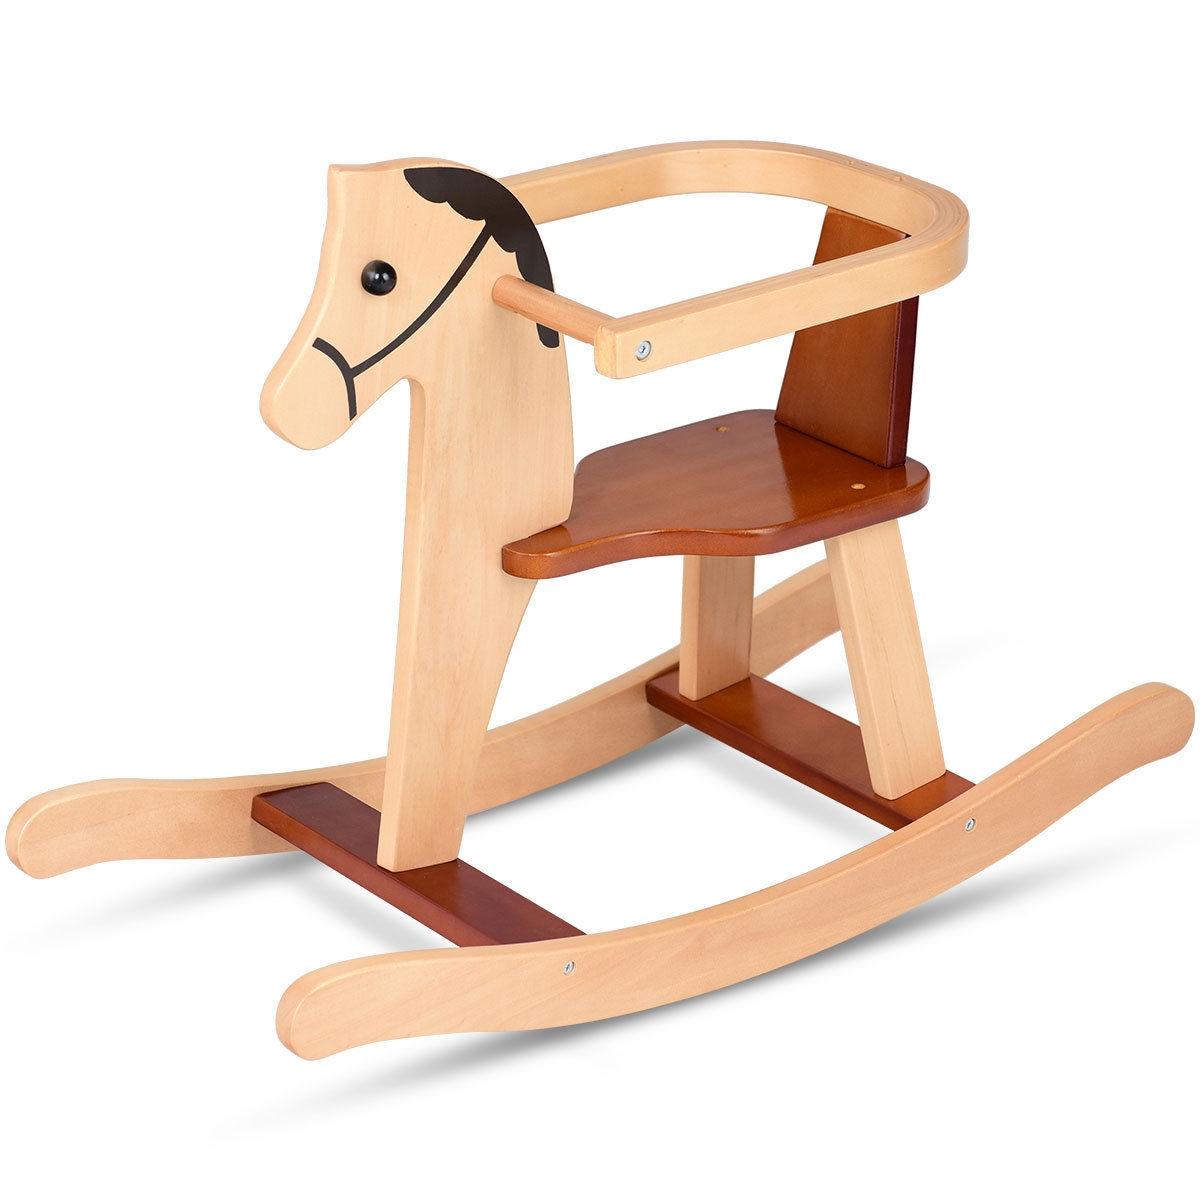 Picture of: Baby Wooden Rocking Horse Rider Chair With Security Bar 11 5ftpatiogazebotentweddingpartyawningmosquitonettingcanopy